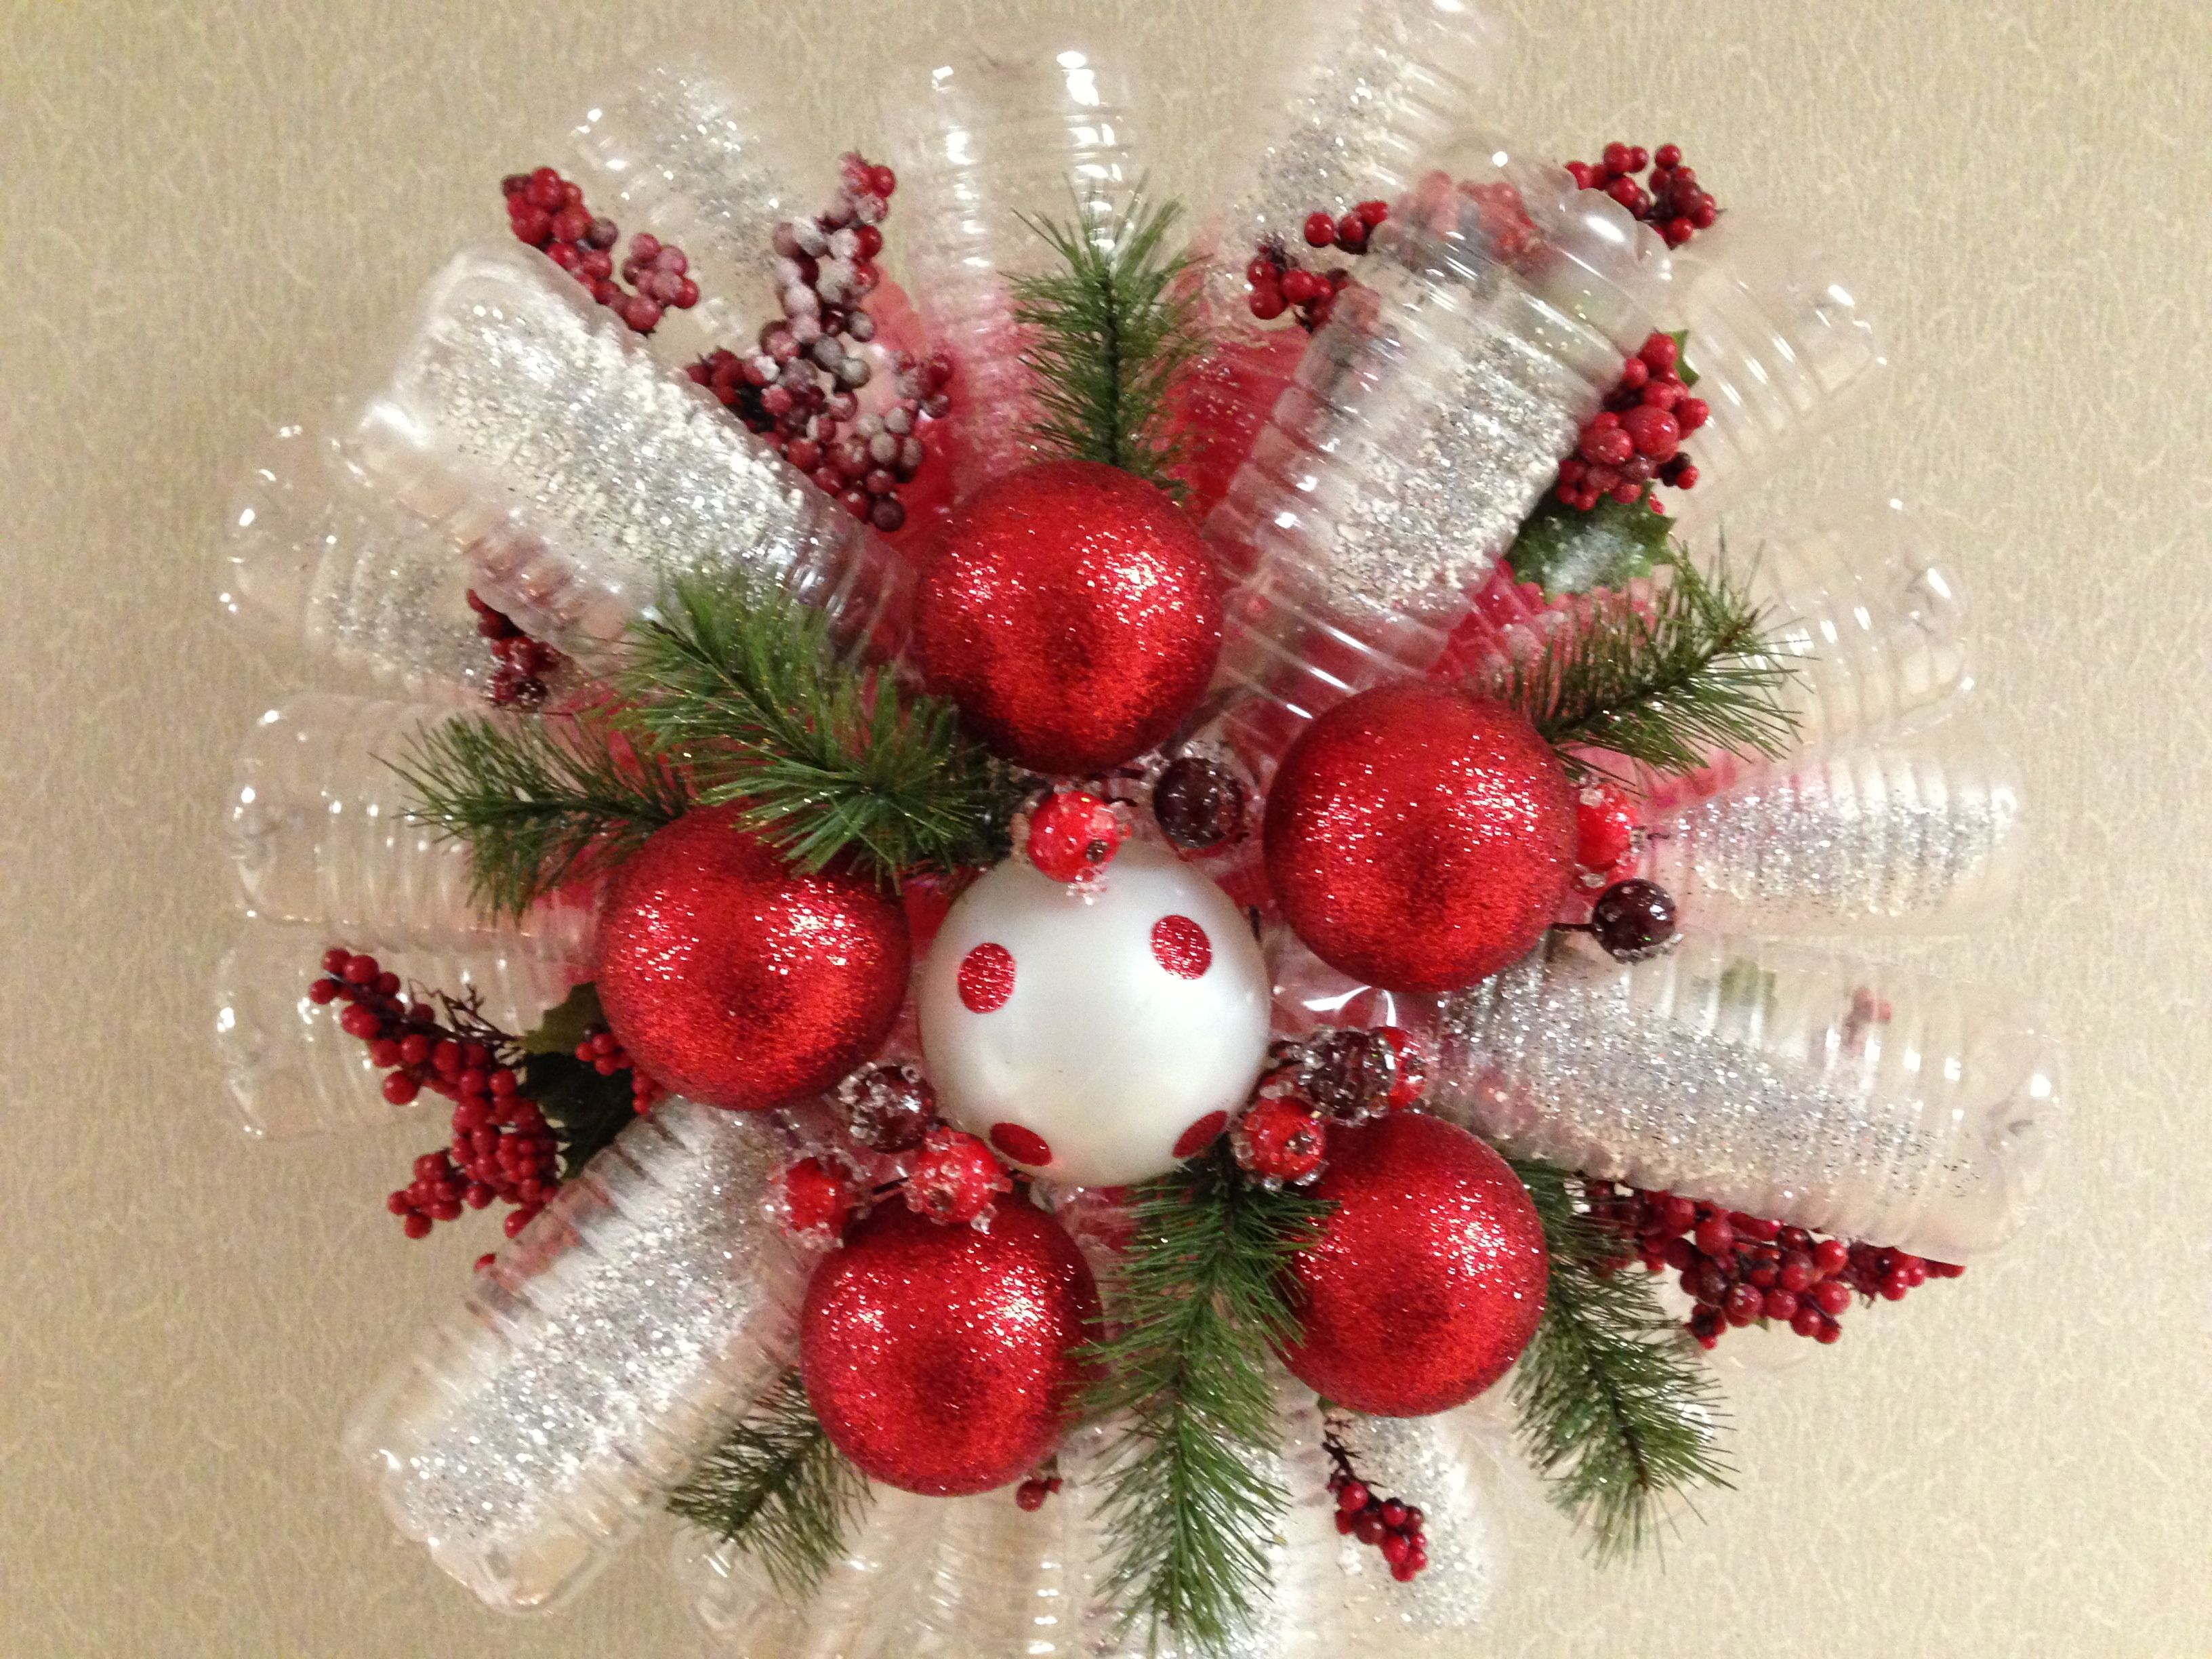 Recycle your water bottles They can be turned into a Holiday Wreath